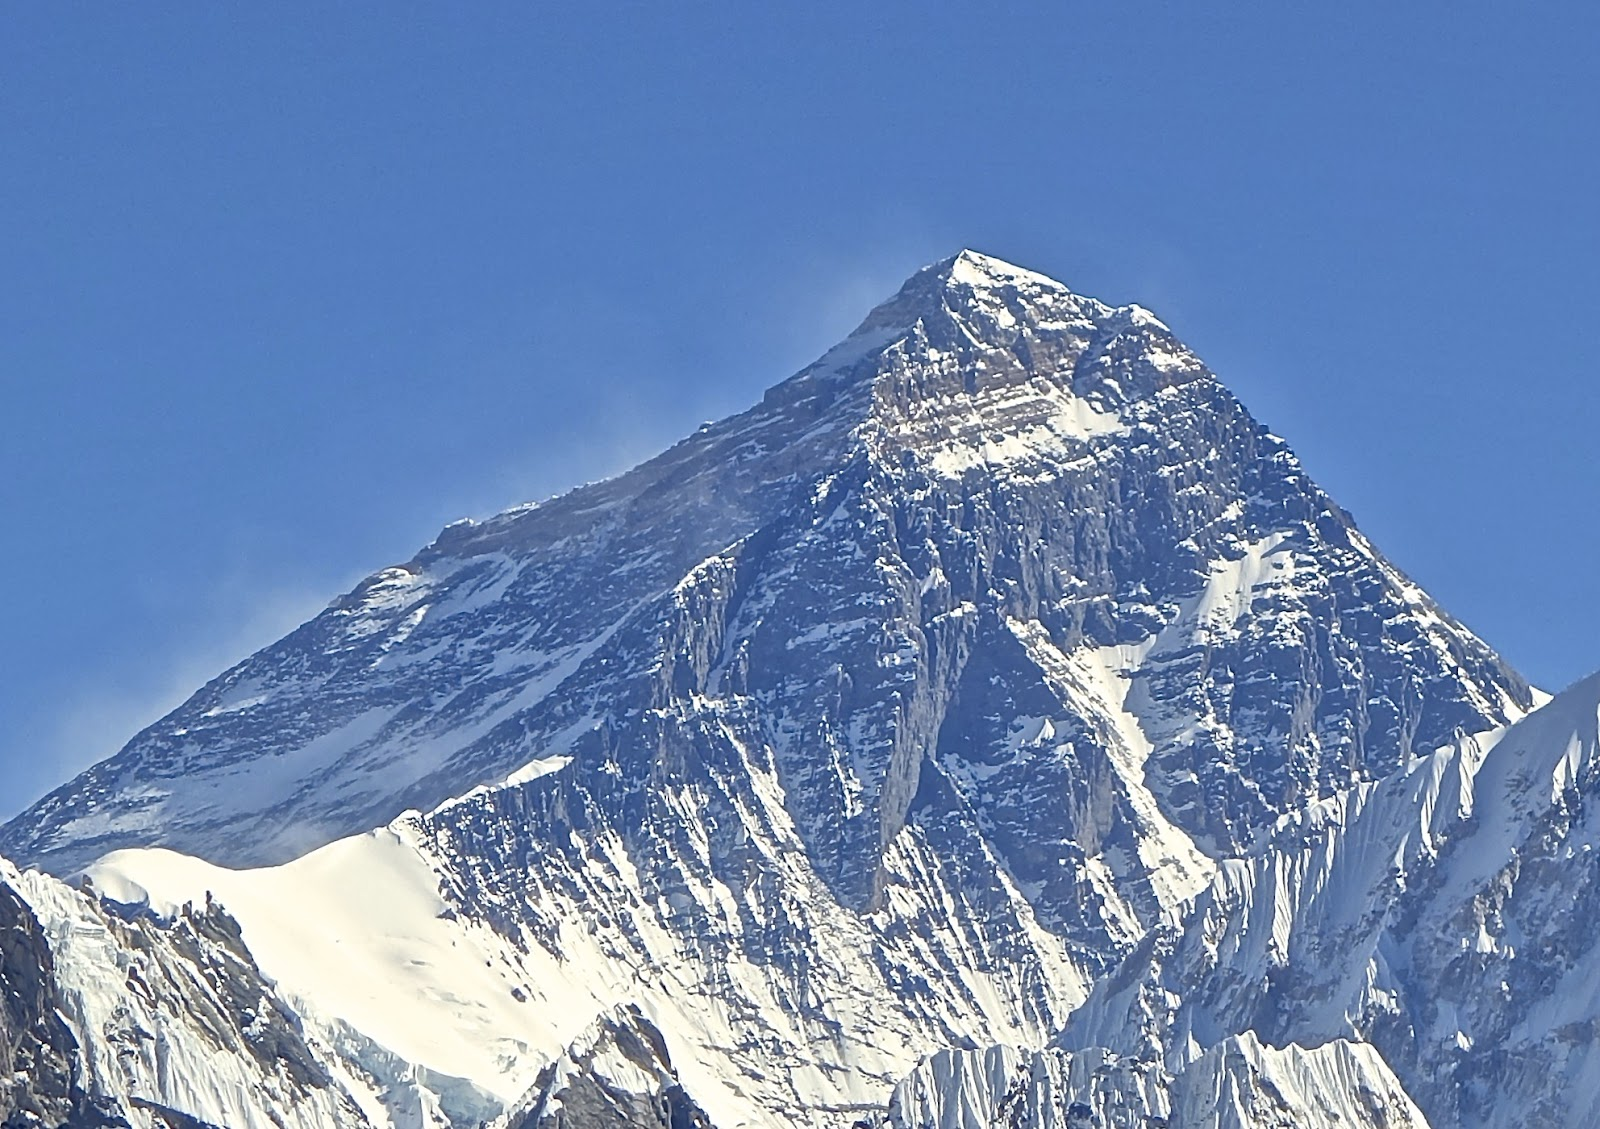 Mt._Everest_from_Gokyo_Ri_November_5,_2012_Cropped.jpg